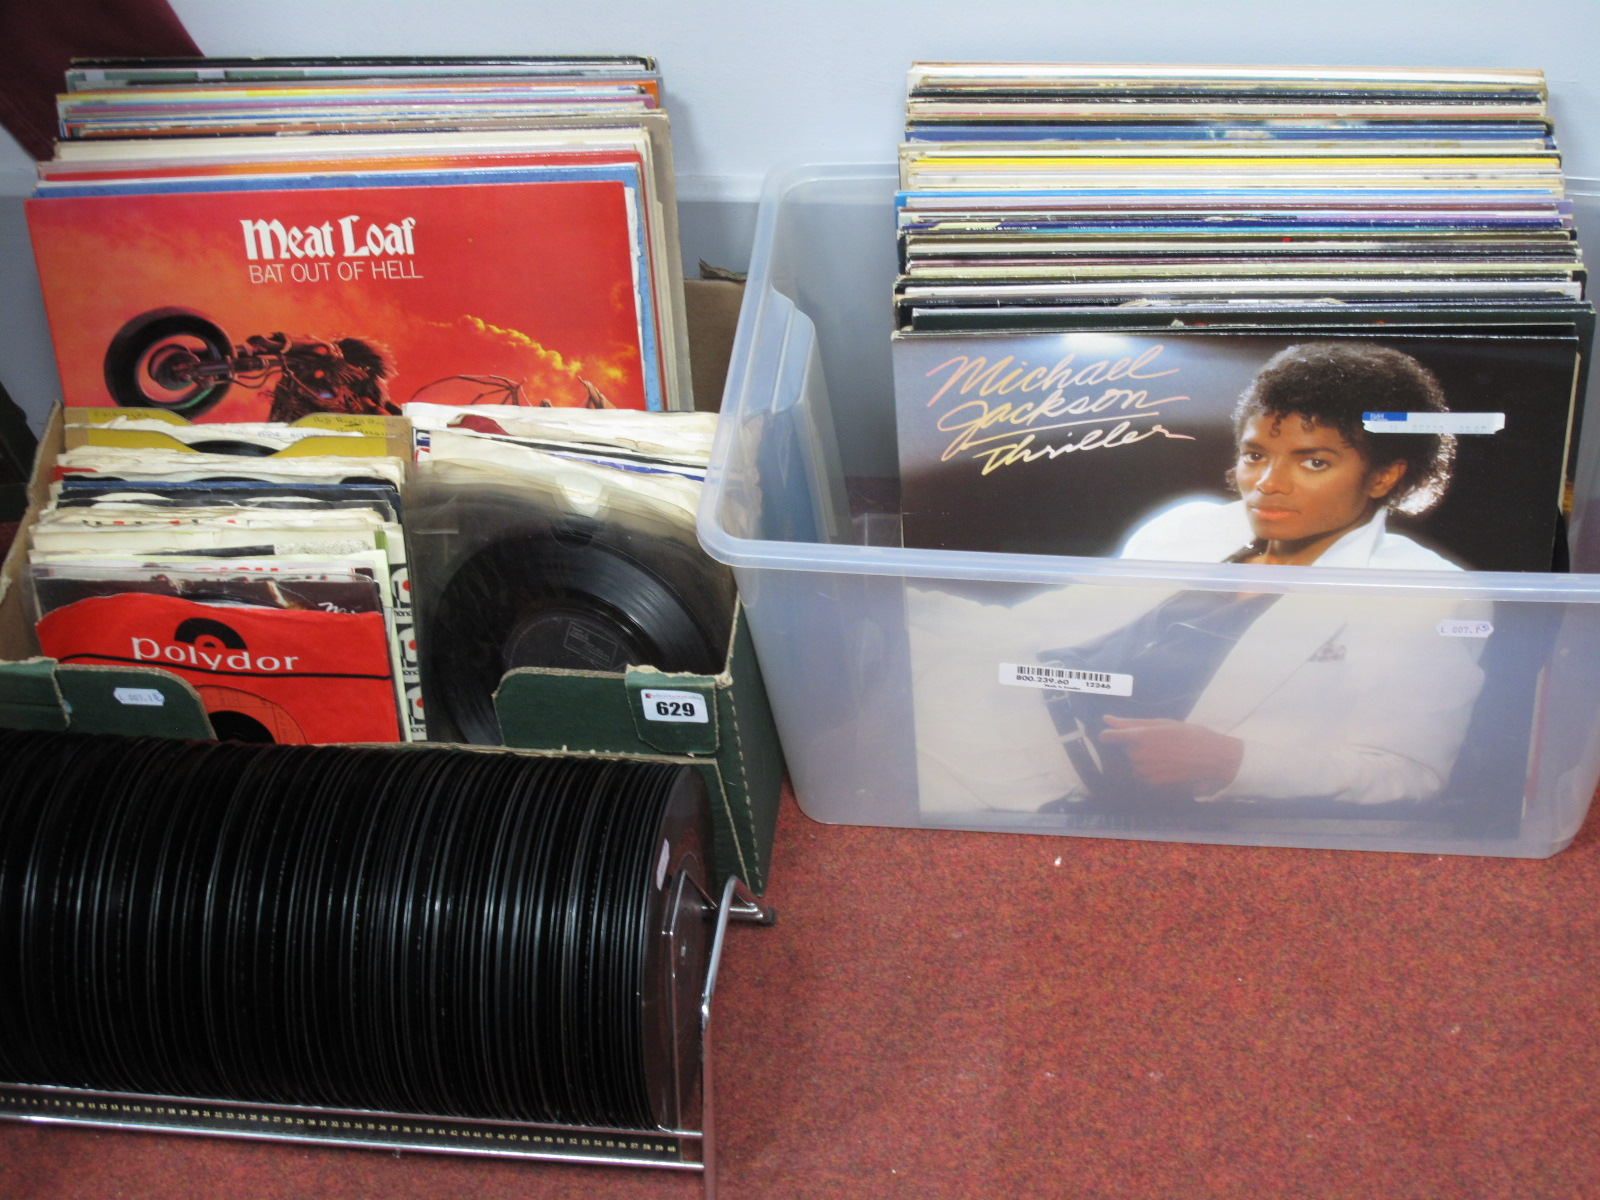 """Lot 629 - A Collection of LP's and 7"""" Records, to include Meat Loaf 'Bat Out of Hell', The Who, Michael"""